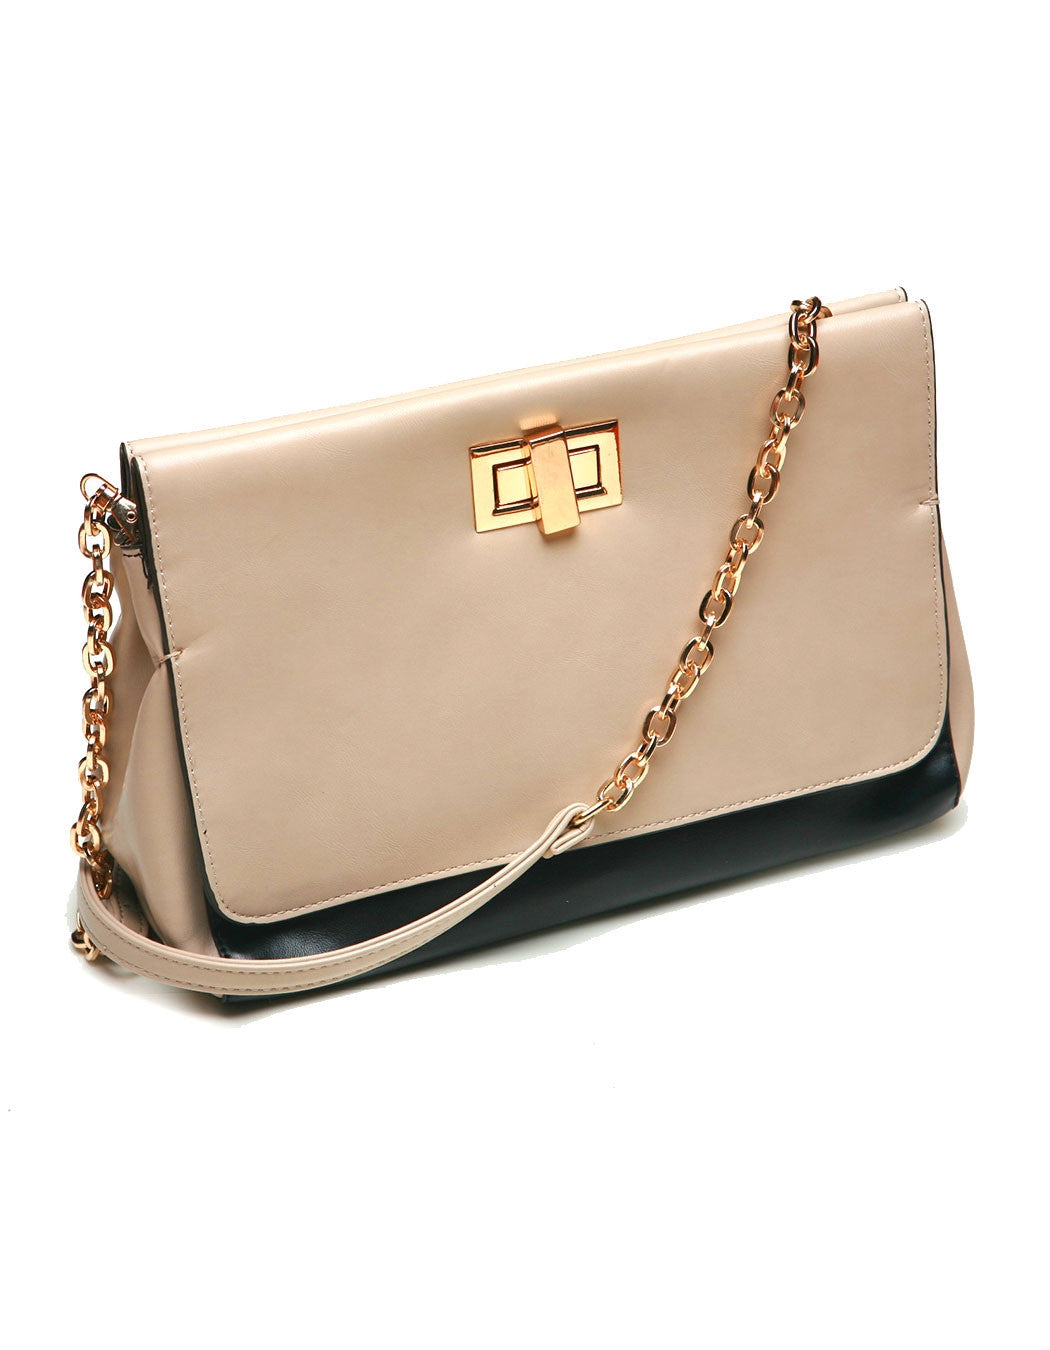 Taupe over Black Shoulder Bag